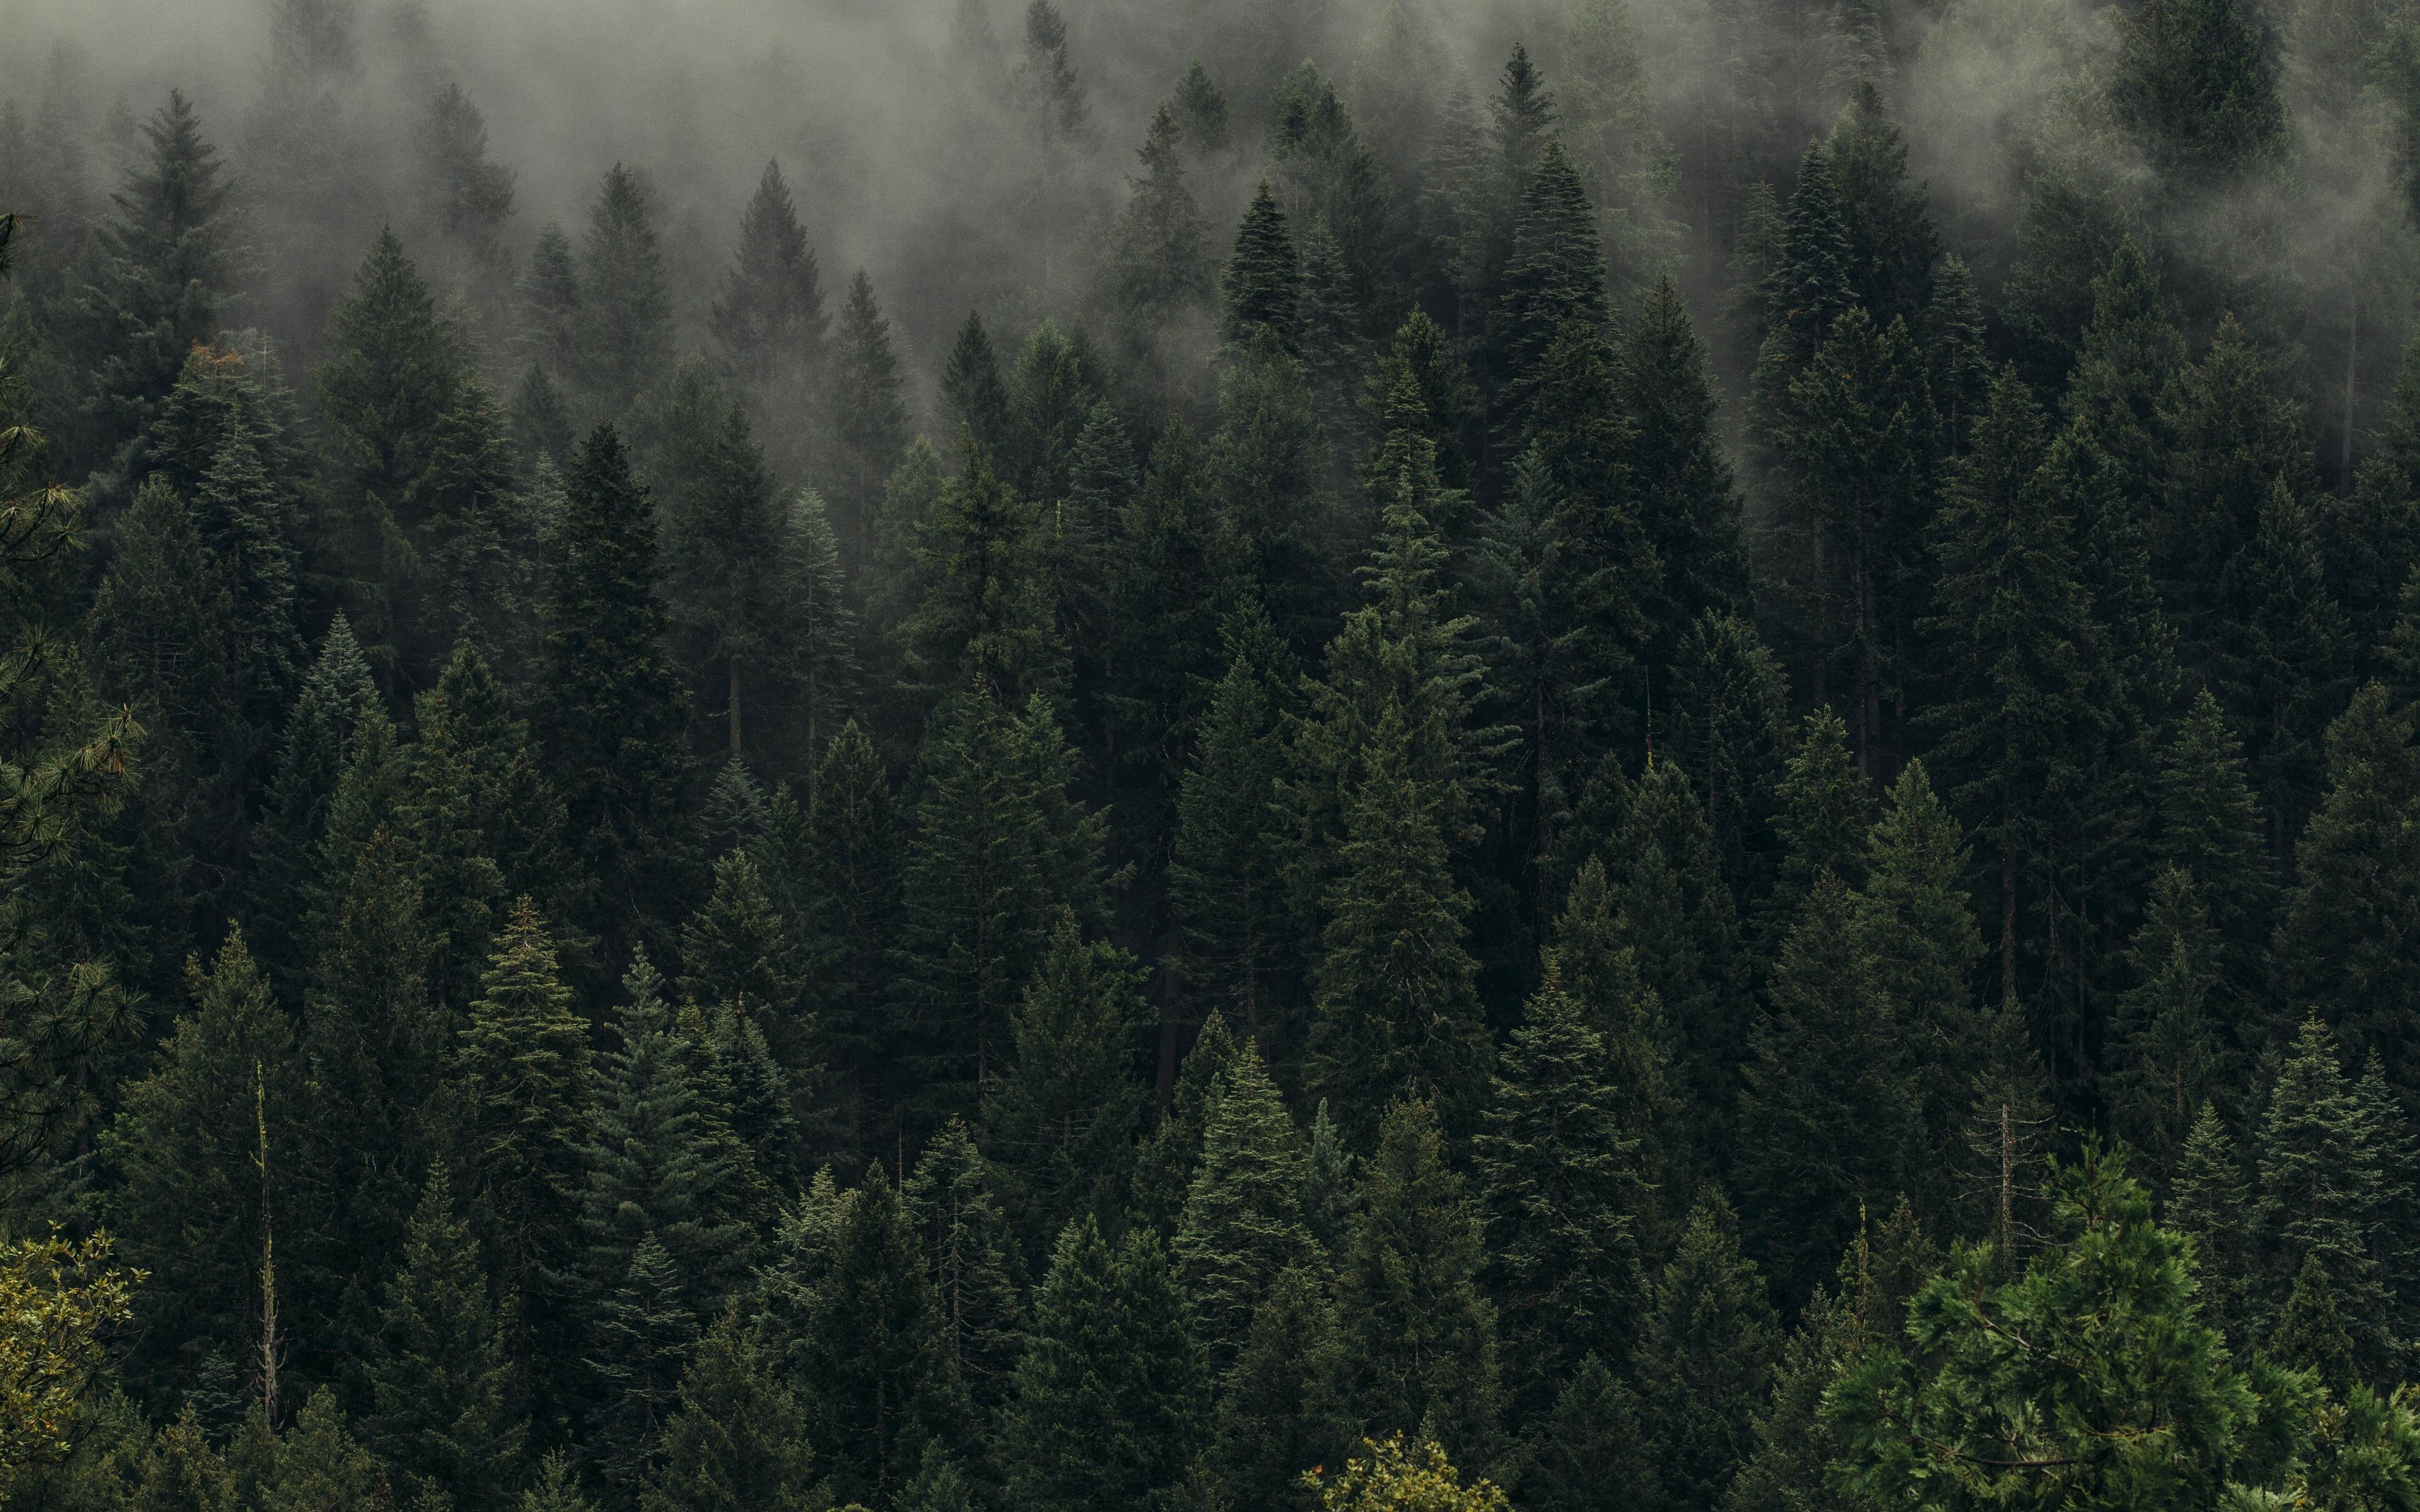 3840x2400 Wallpaper Trees Green Fog Forest Shroud Top View Forest Wallpaper Forest Nature